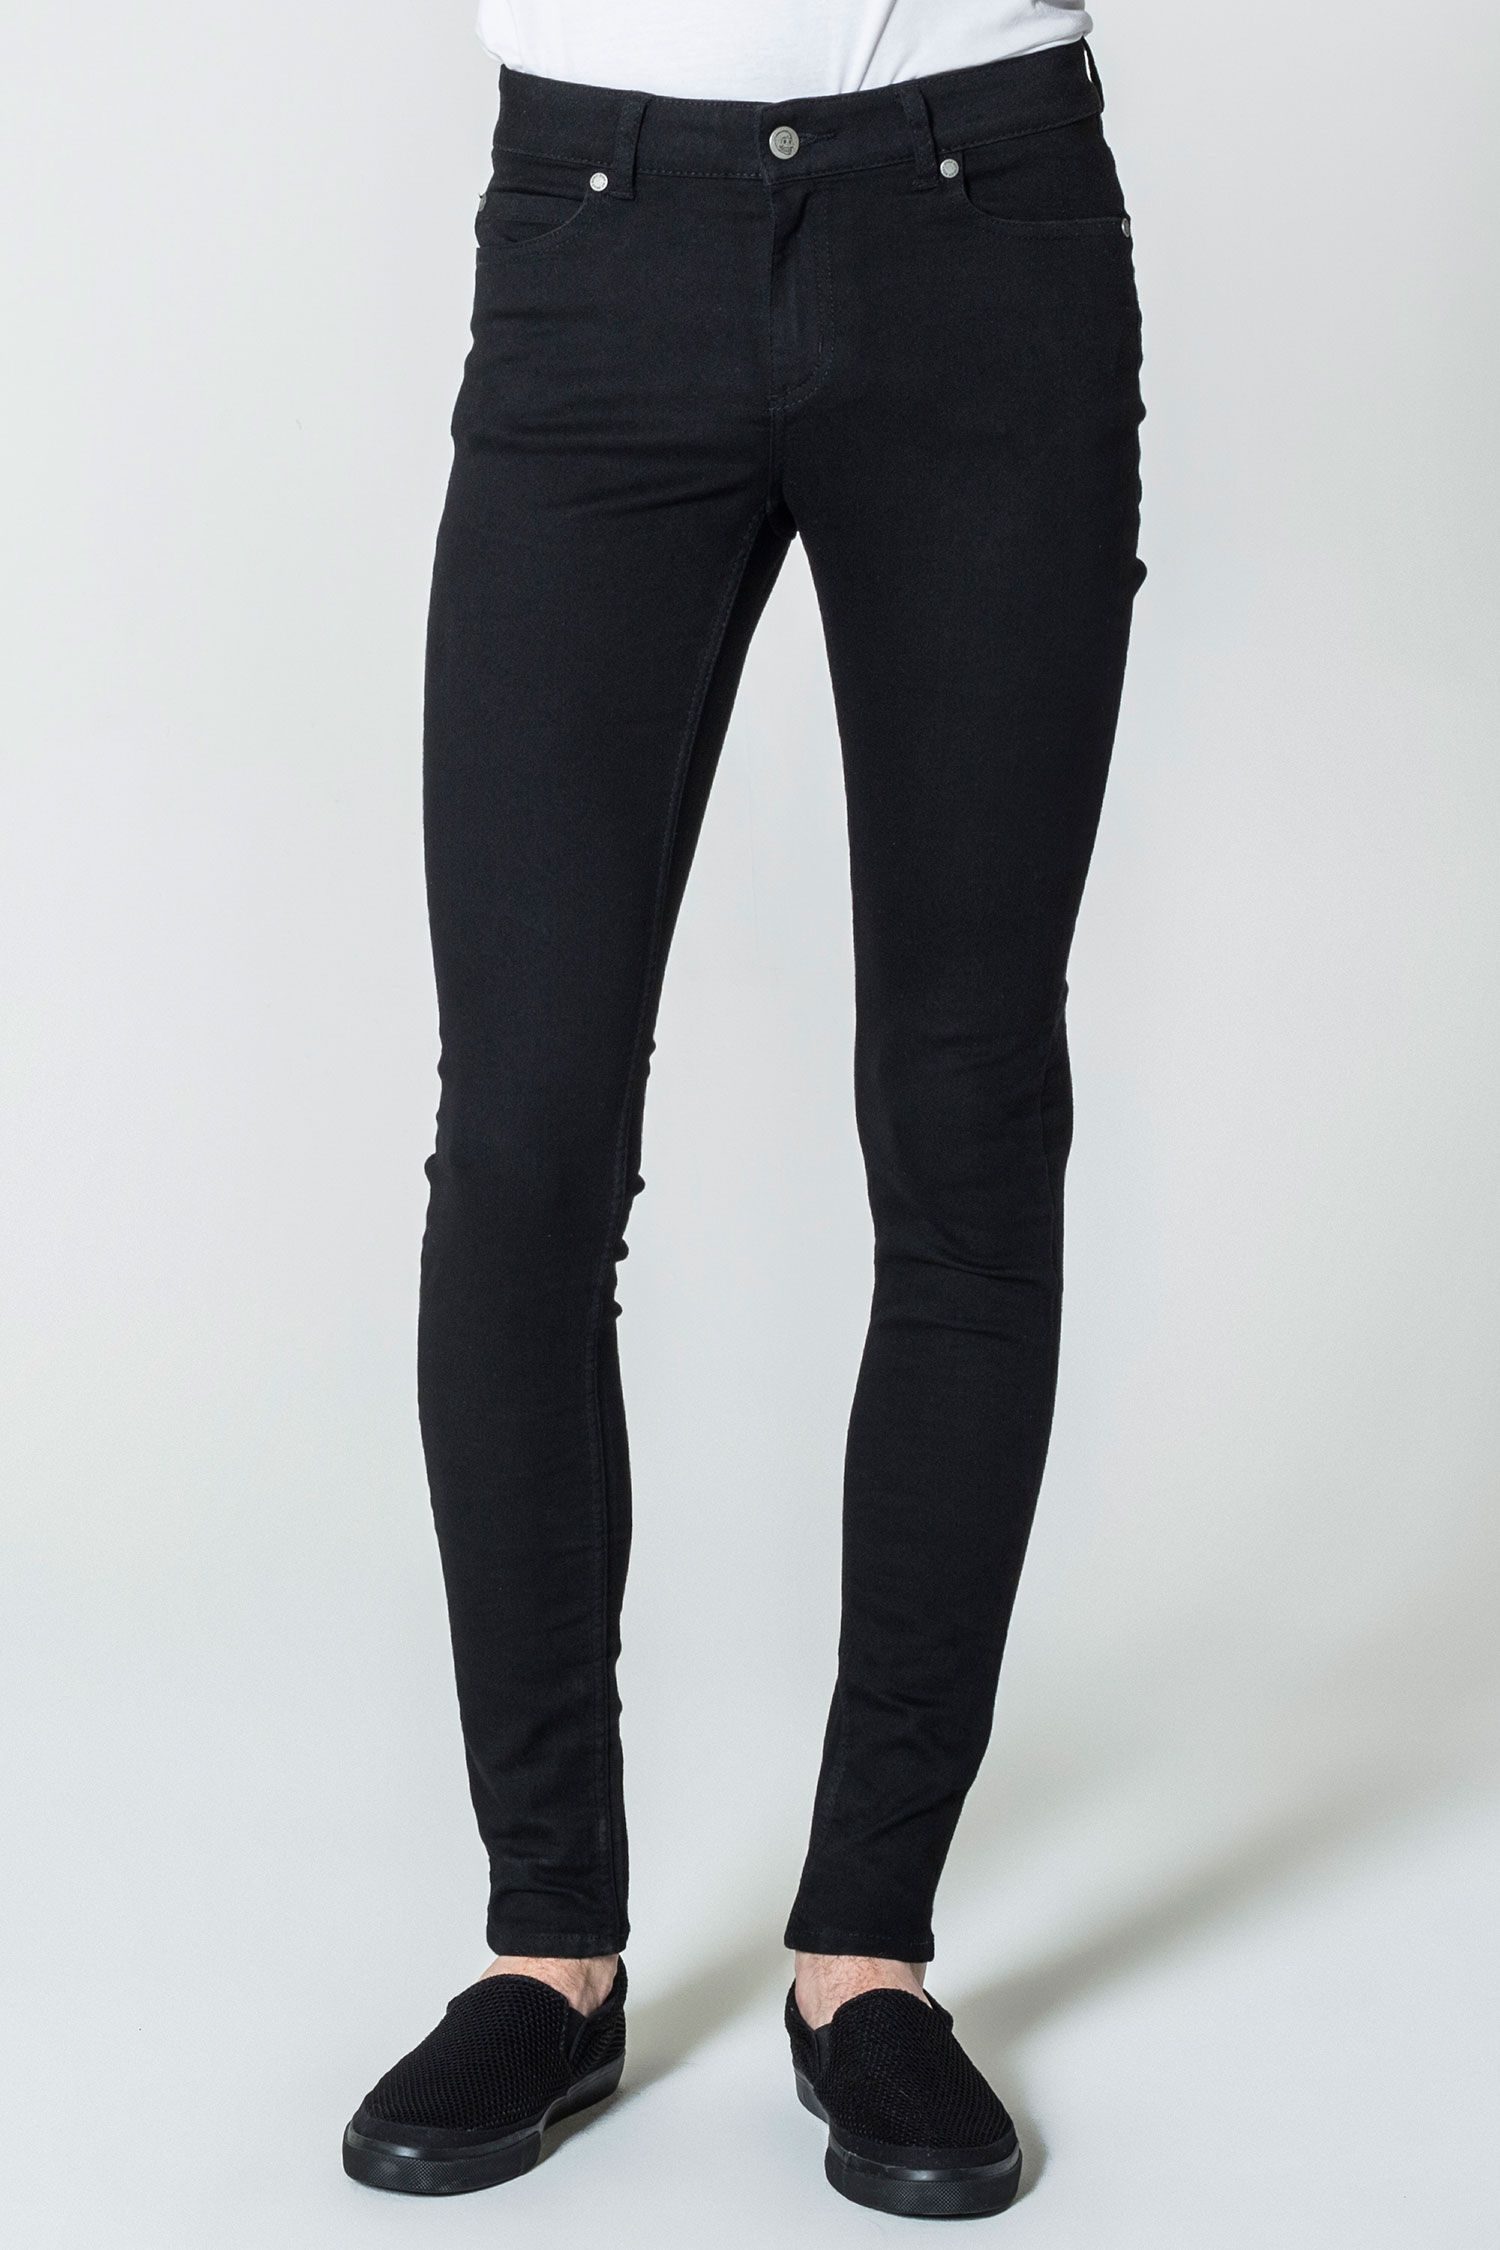 692cd0a5 Him Spray Black Jeans Fit: Low rise, super skinny fit jeans and legs. Him  Spray…